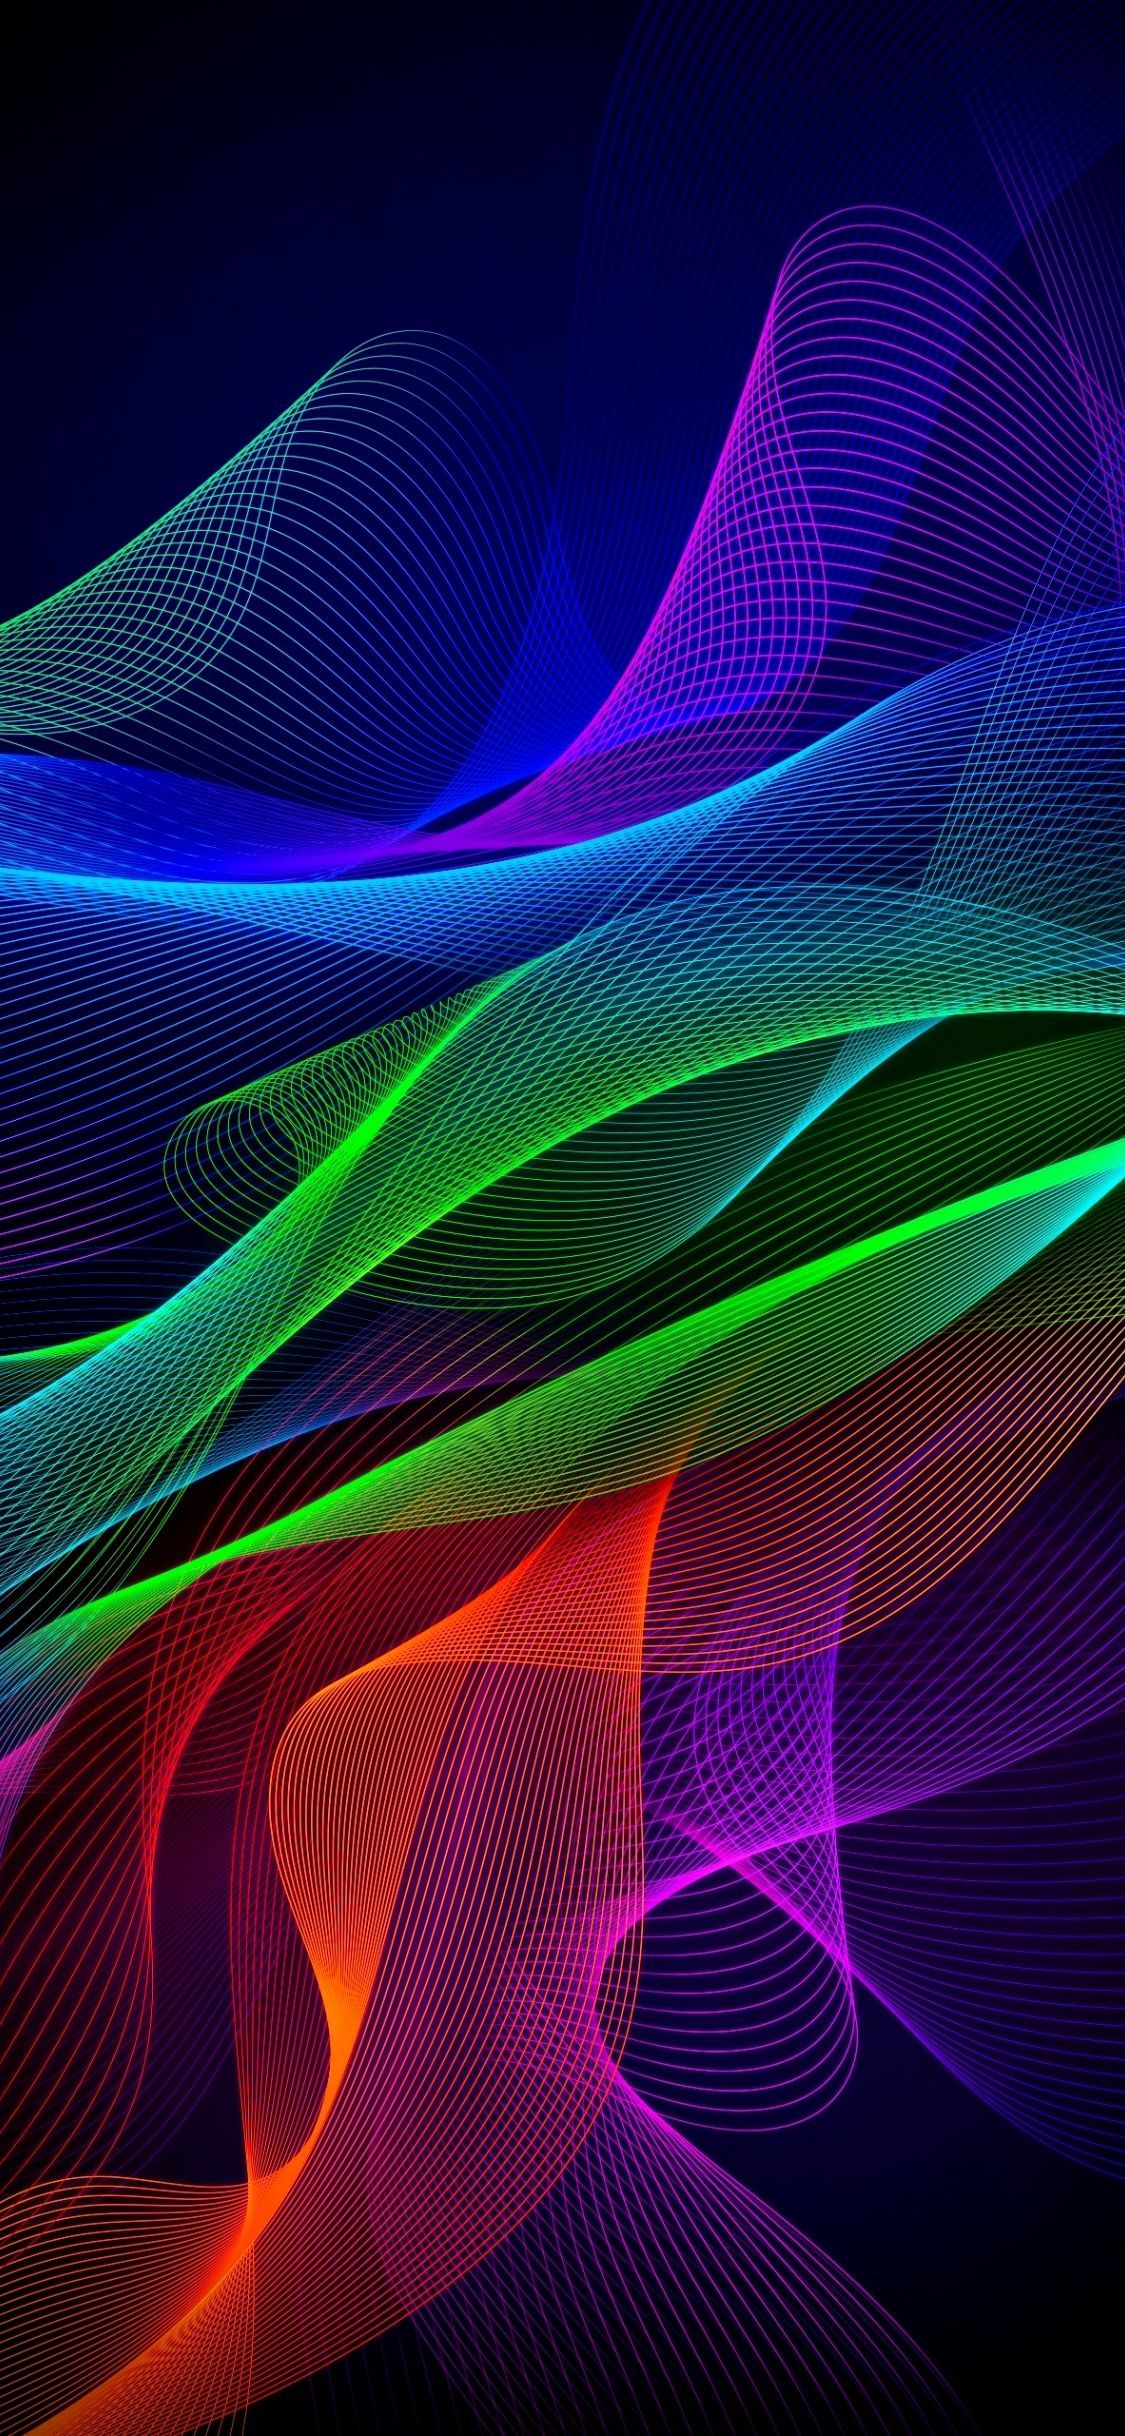 Razer Wallpaper 4k Phone Trick In 2020 Stock Wallpaper Iphone Homescreen Wallpaper Abstract